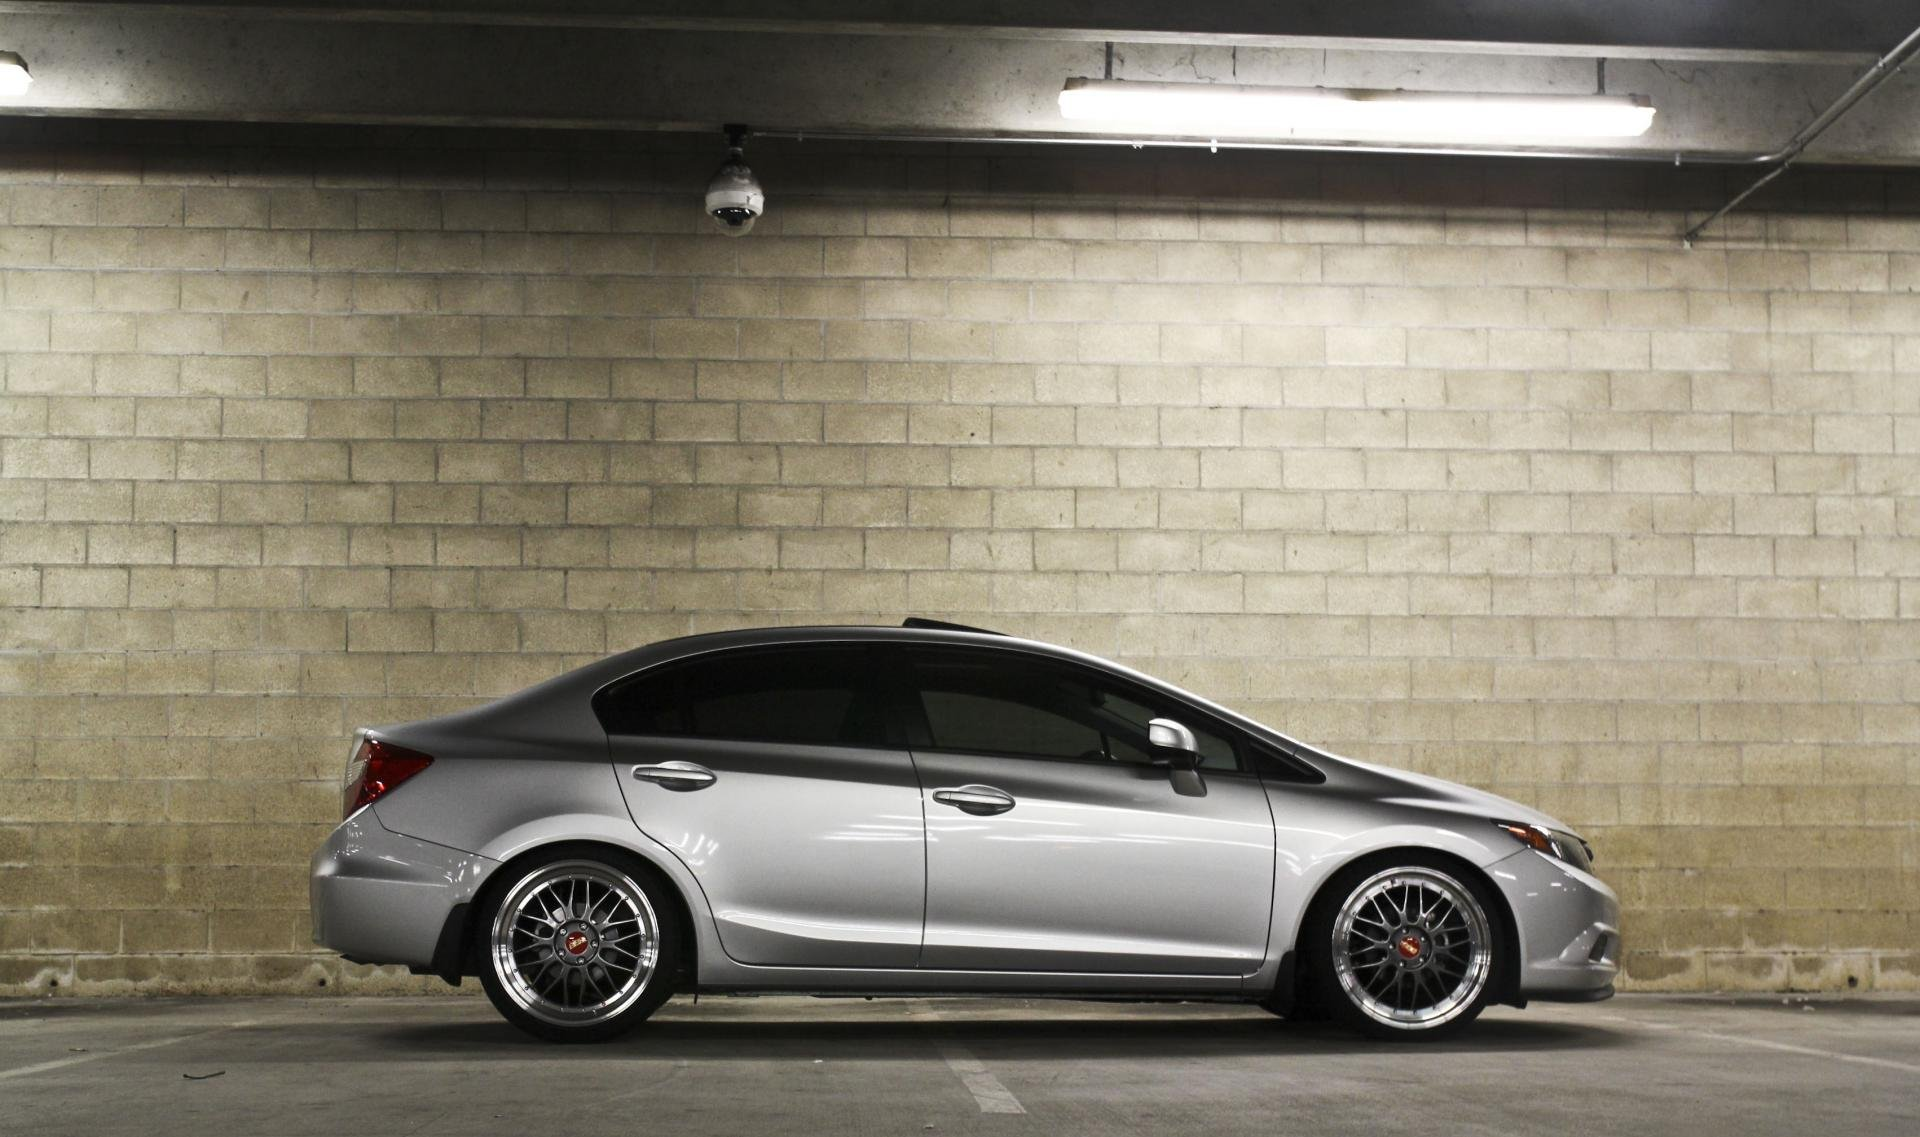 9th Gen Accord >> Show Your Aftermarket Wheels! - Page 27